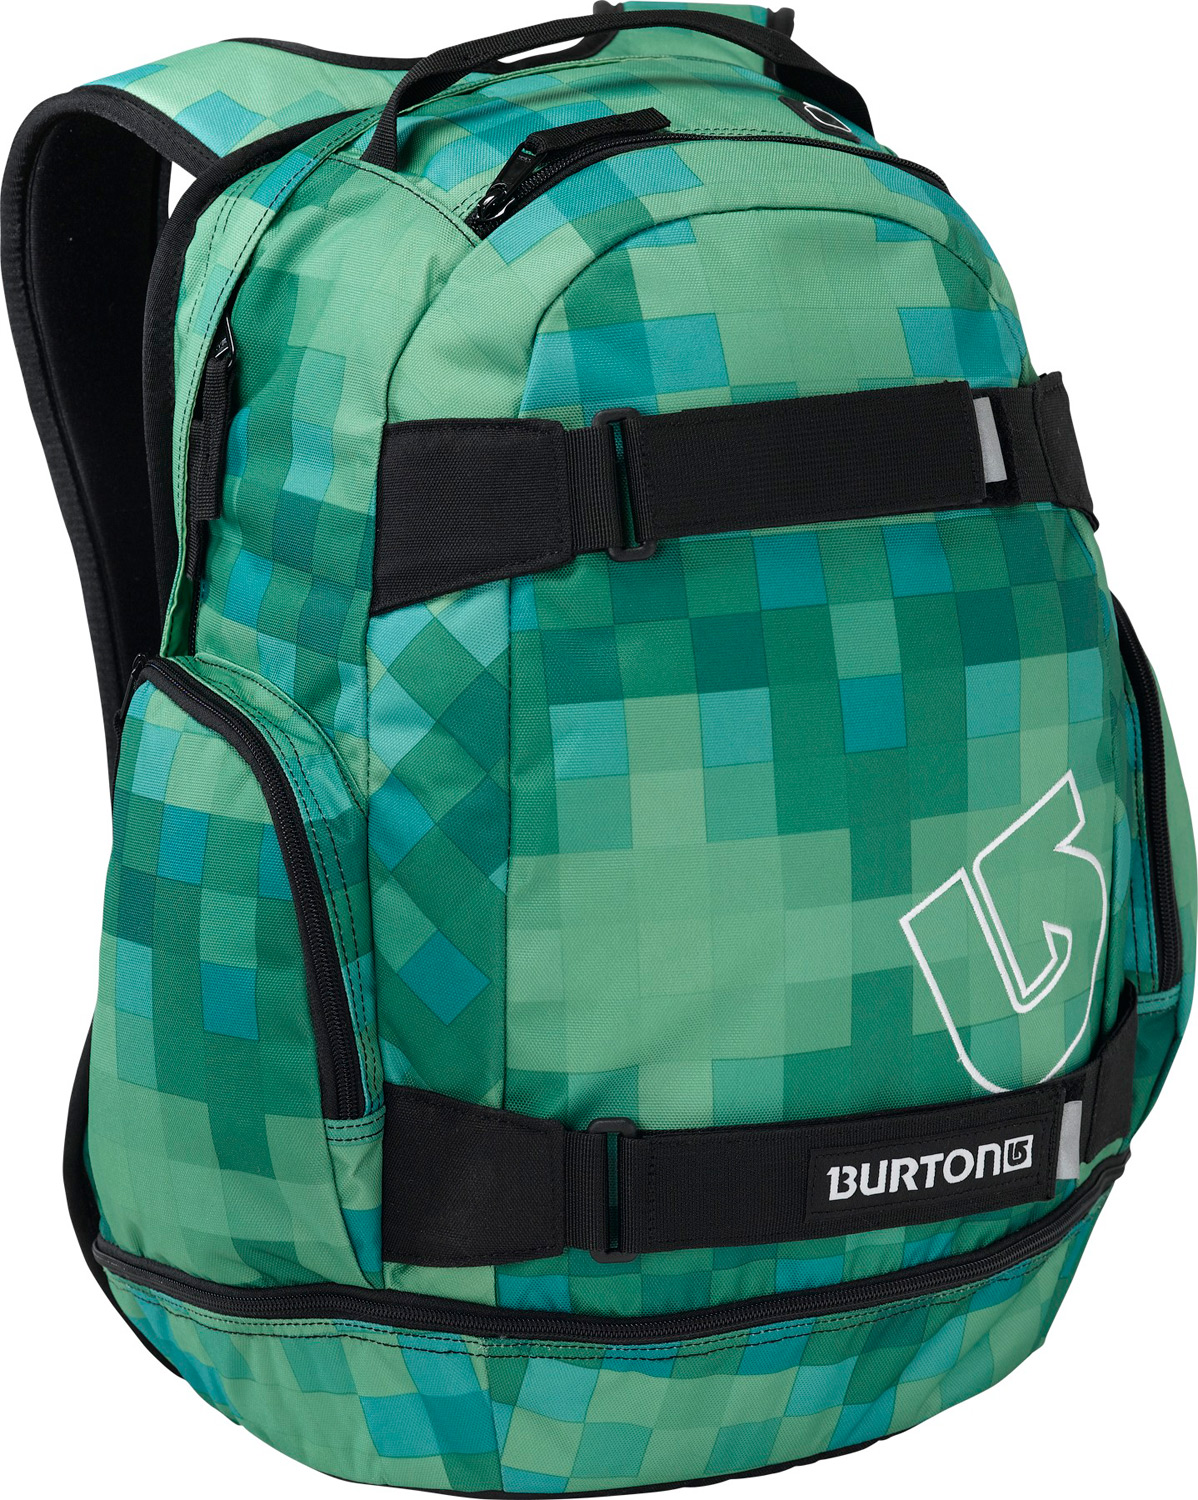 Snowboard Your buddies will be tripping when you roll up dispensing cold ones from your Burton Metalhead Pack. With pockets for laptop and music, as well as straps for your skate and a built-in cooler compartment, this is the ultimate pack for laid-back afternoons at the spot.Key Features of the Burton Metalhead Backpack: Vertical skate carry Padded laptop pocket Fleece lined sound pocket with headphone cable port 28L [19in x 12in x 8in] [48.5cm x 30.5cm x 20.5cm] 600D Polyester 300D Polyester Dobby Separate Cooler Compartment Cush Ergonomic Shoulder Harness 1.5 lbs [0.68 kg] - $31.95